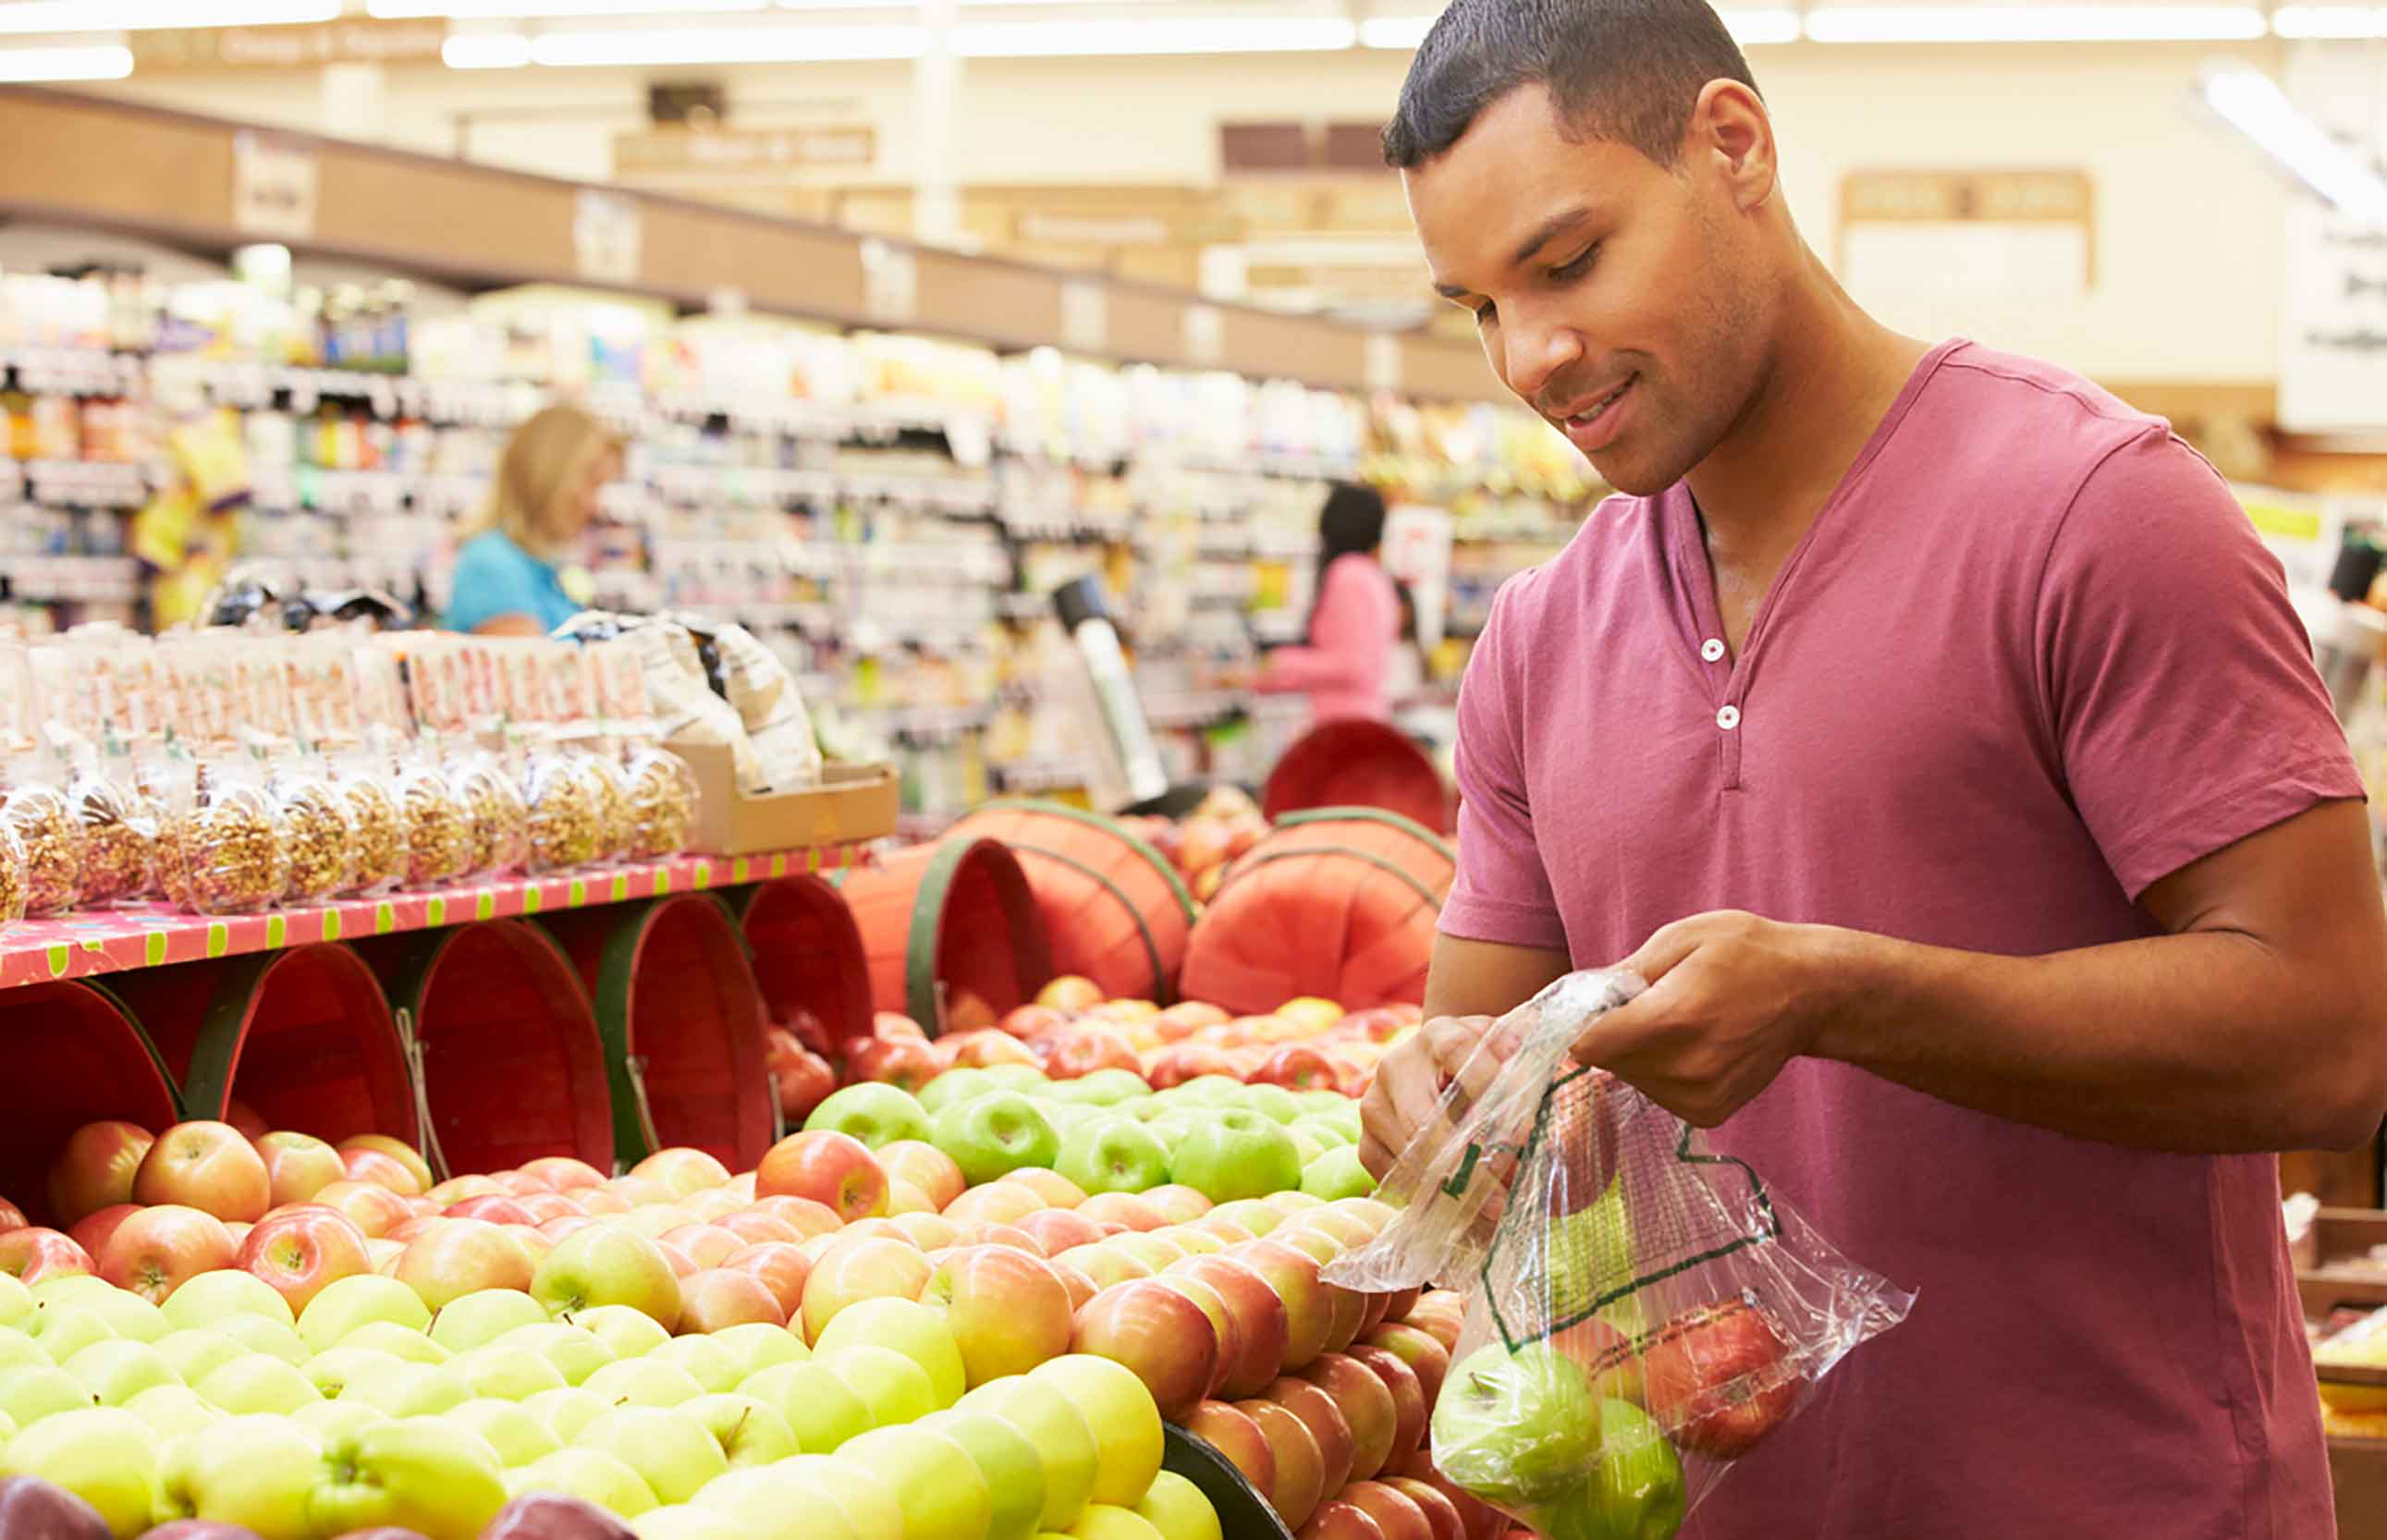 Personal Loans With Bad Credit >> 50 Ways to Save at the Supermarket | Credit.com